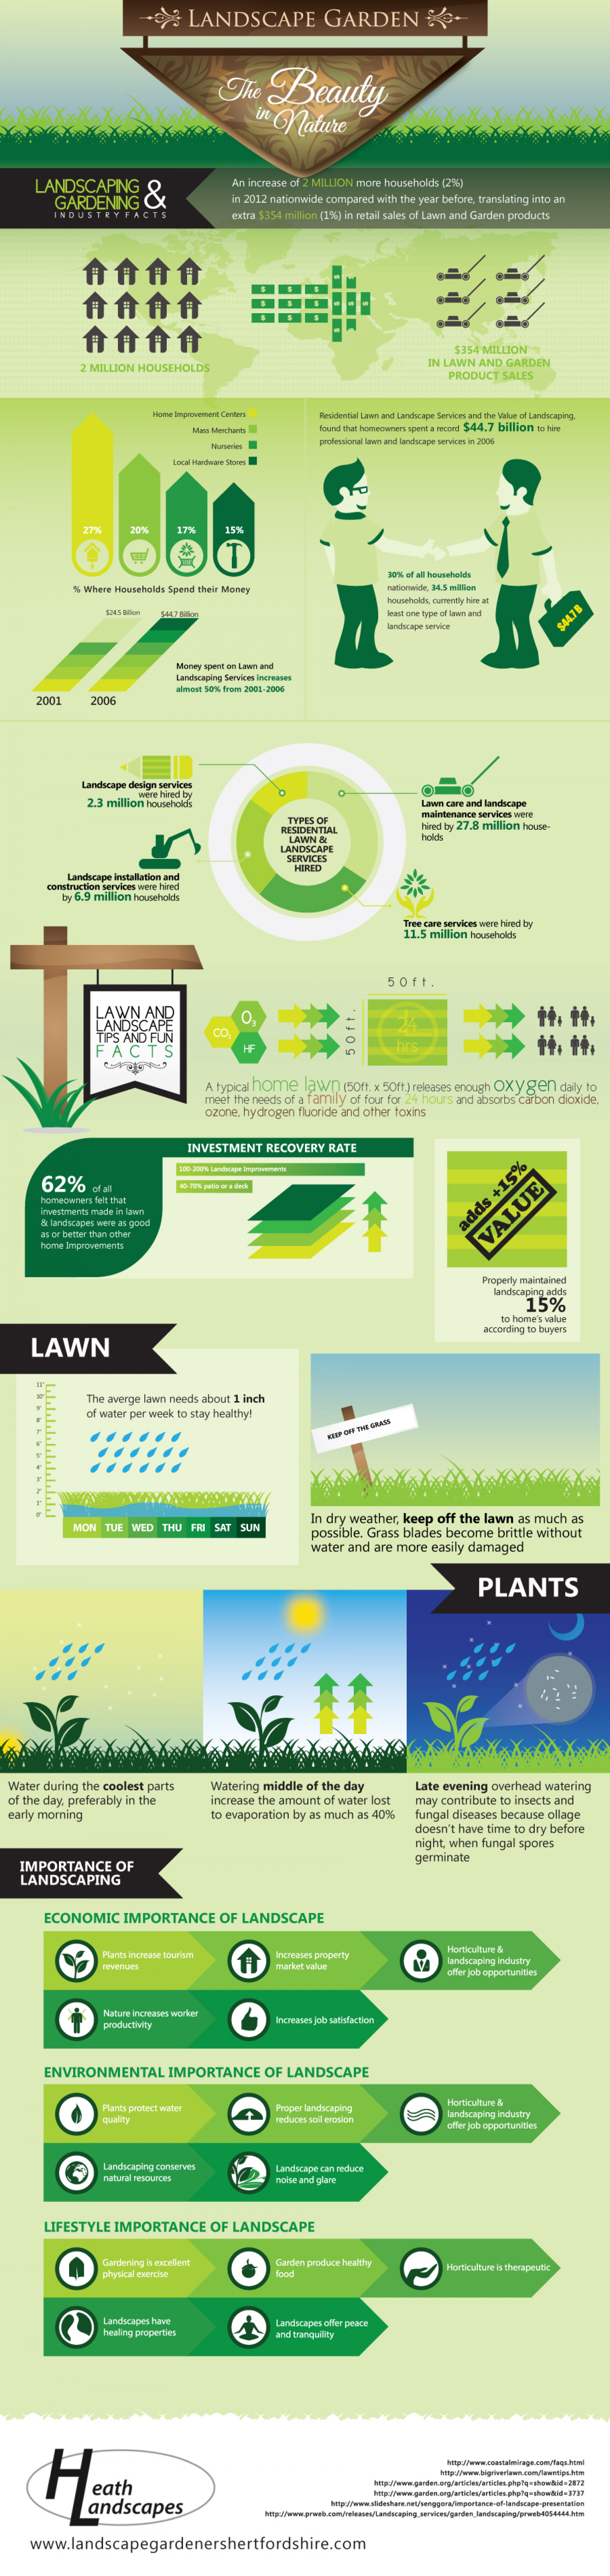 Landscape Garden: The Beauty in Nature Infographic